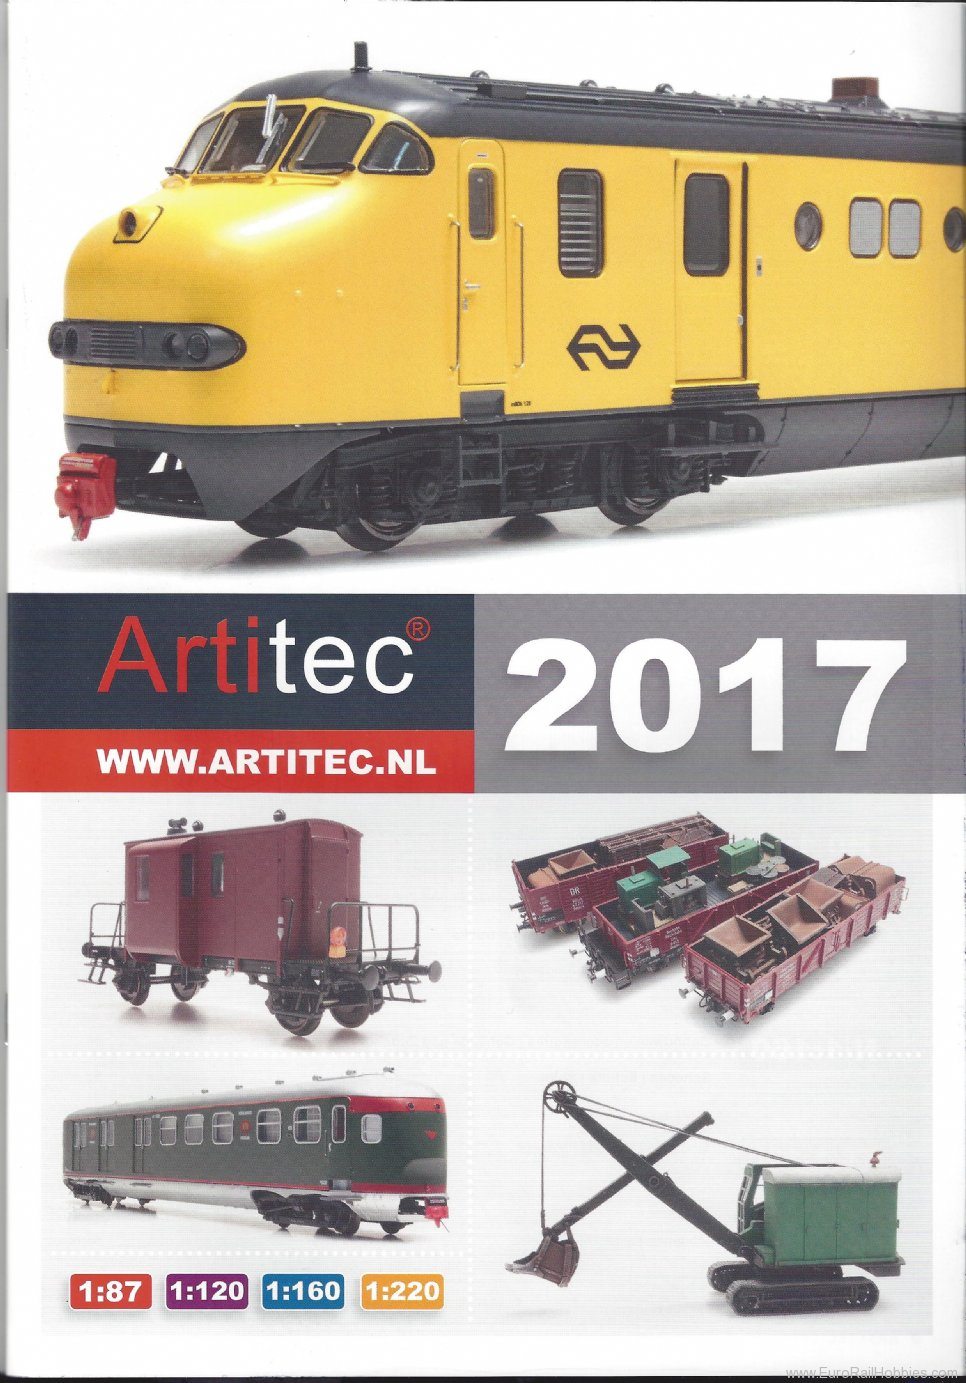 Artitec 014 2016-17 Artitec Main Catalog (not including M